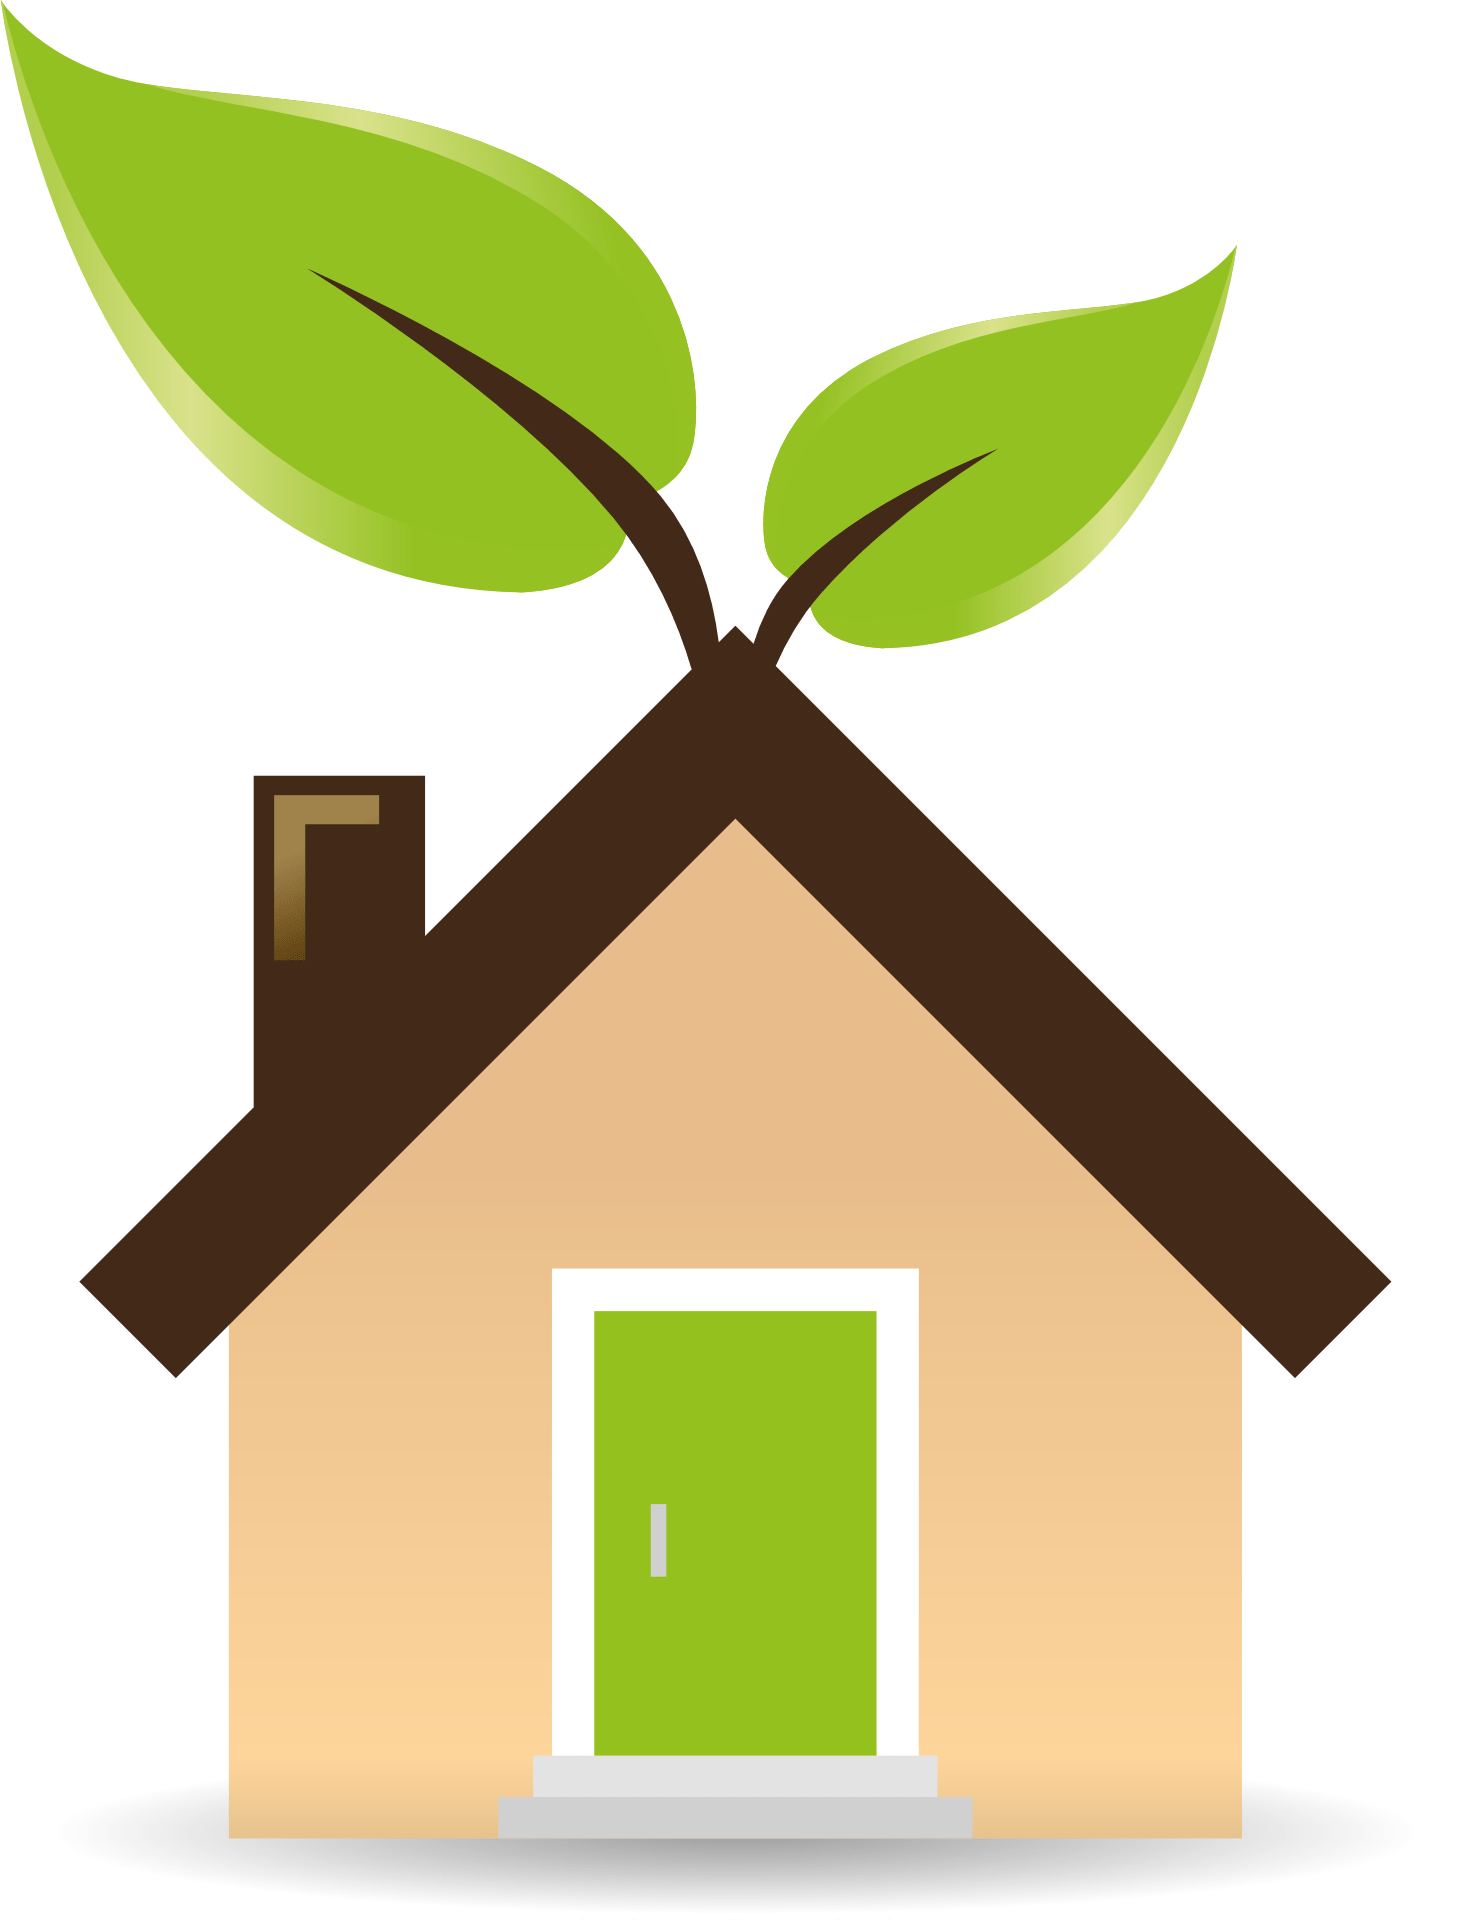 8 Tips on Making Houses Eco Friendly for New Homeowners